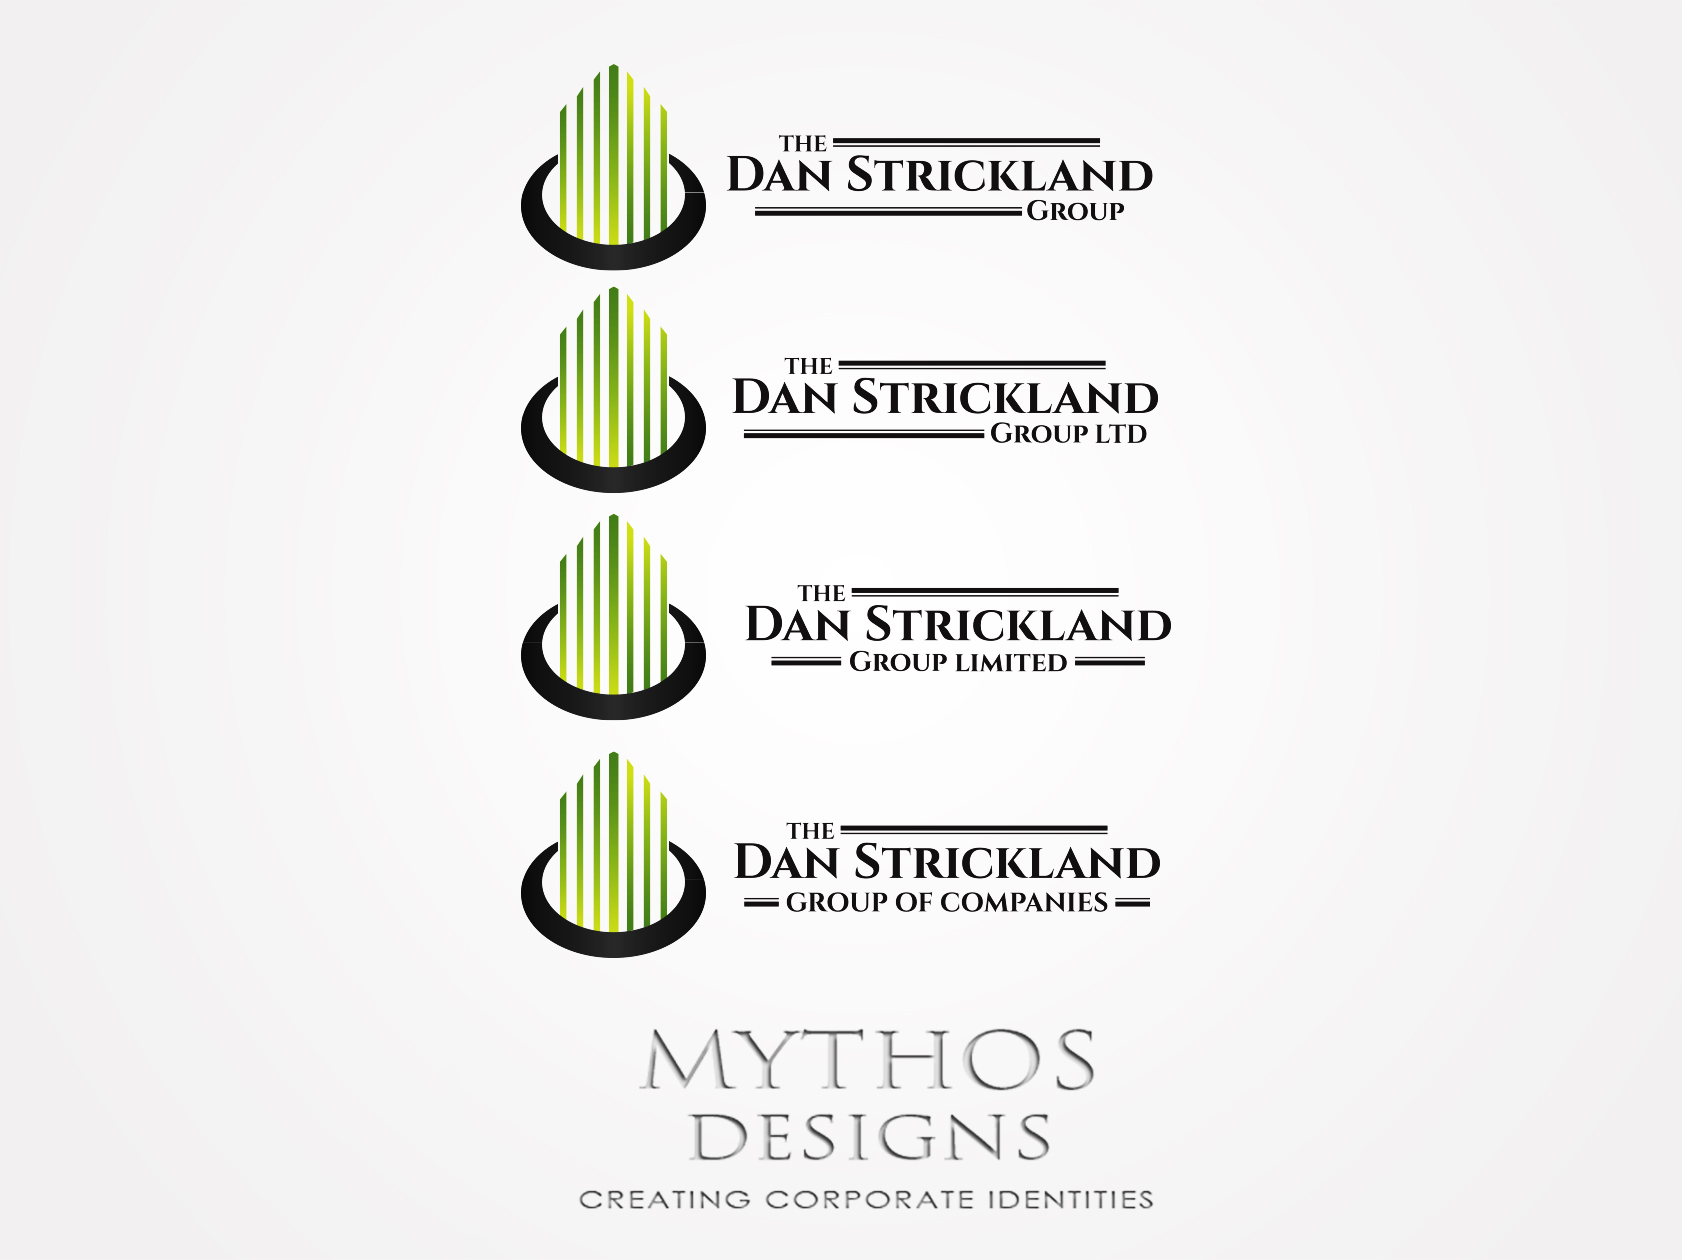 Logo Design by Mythos Designs - Entry No. 41 in the Logo Design Contest Creative Logo Design for The Dan Strickland Group.